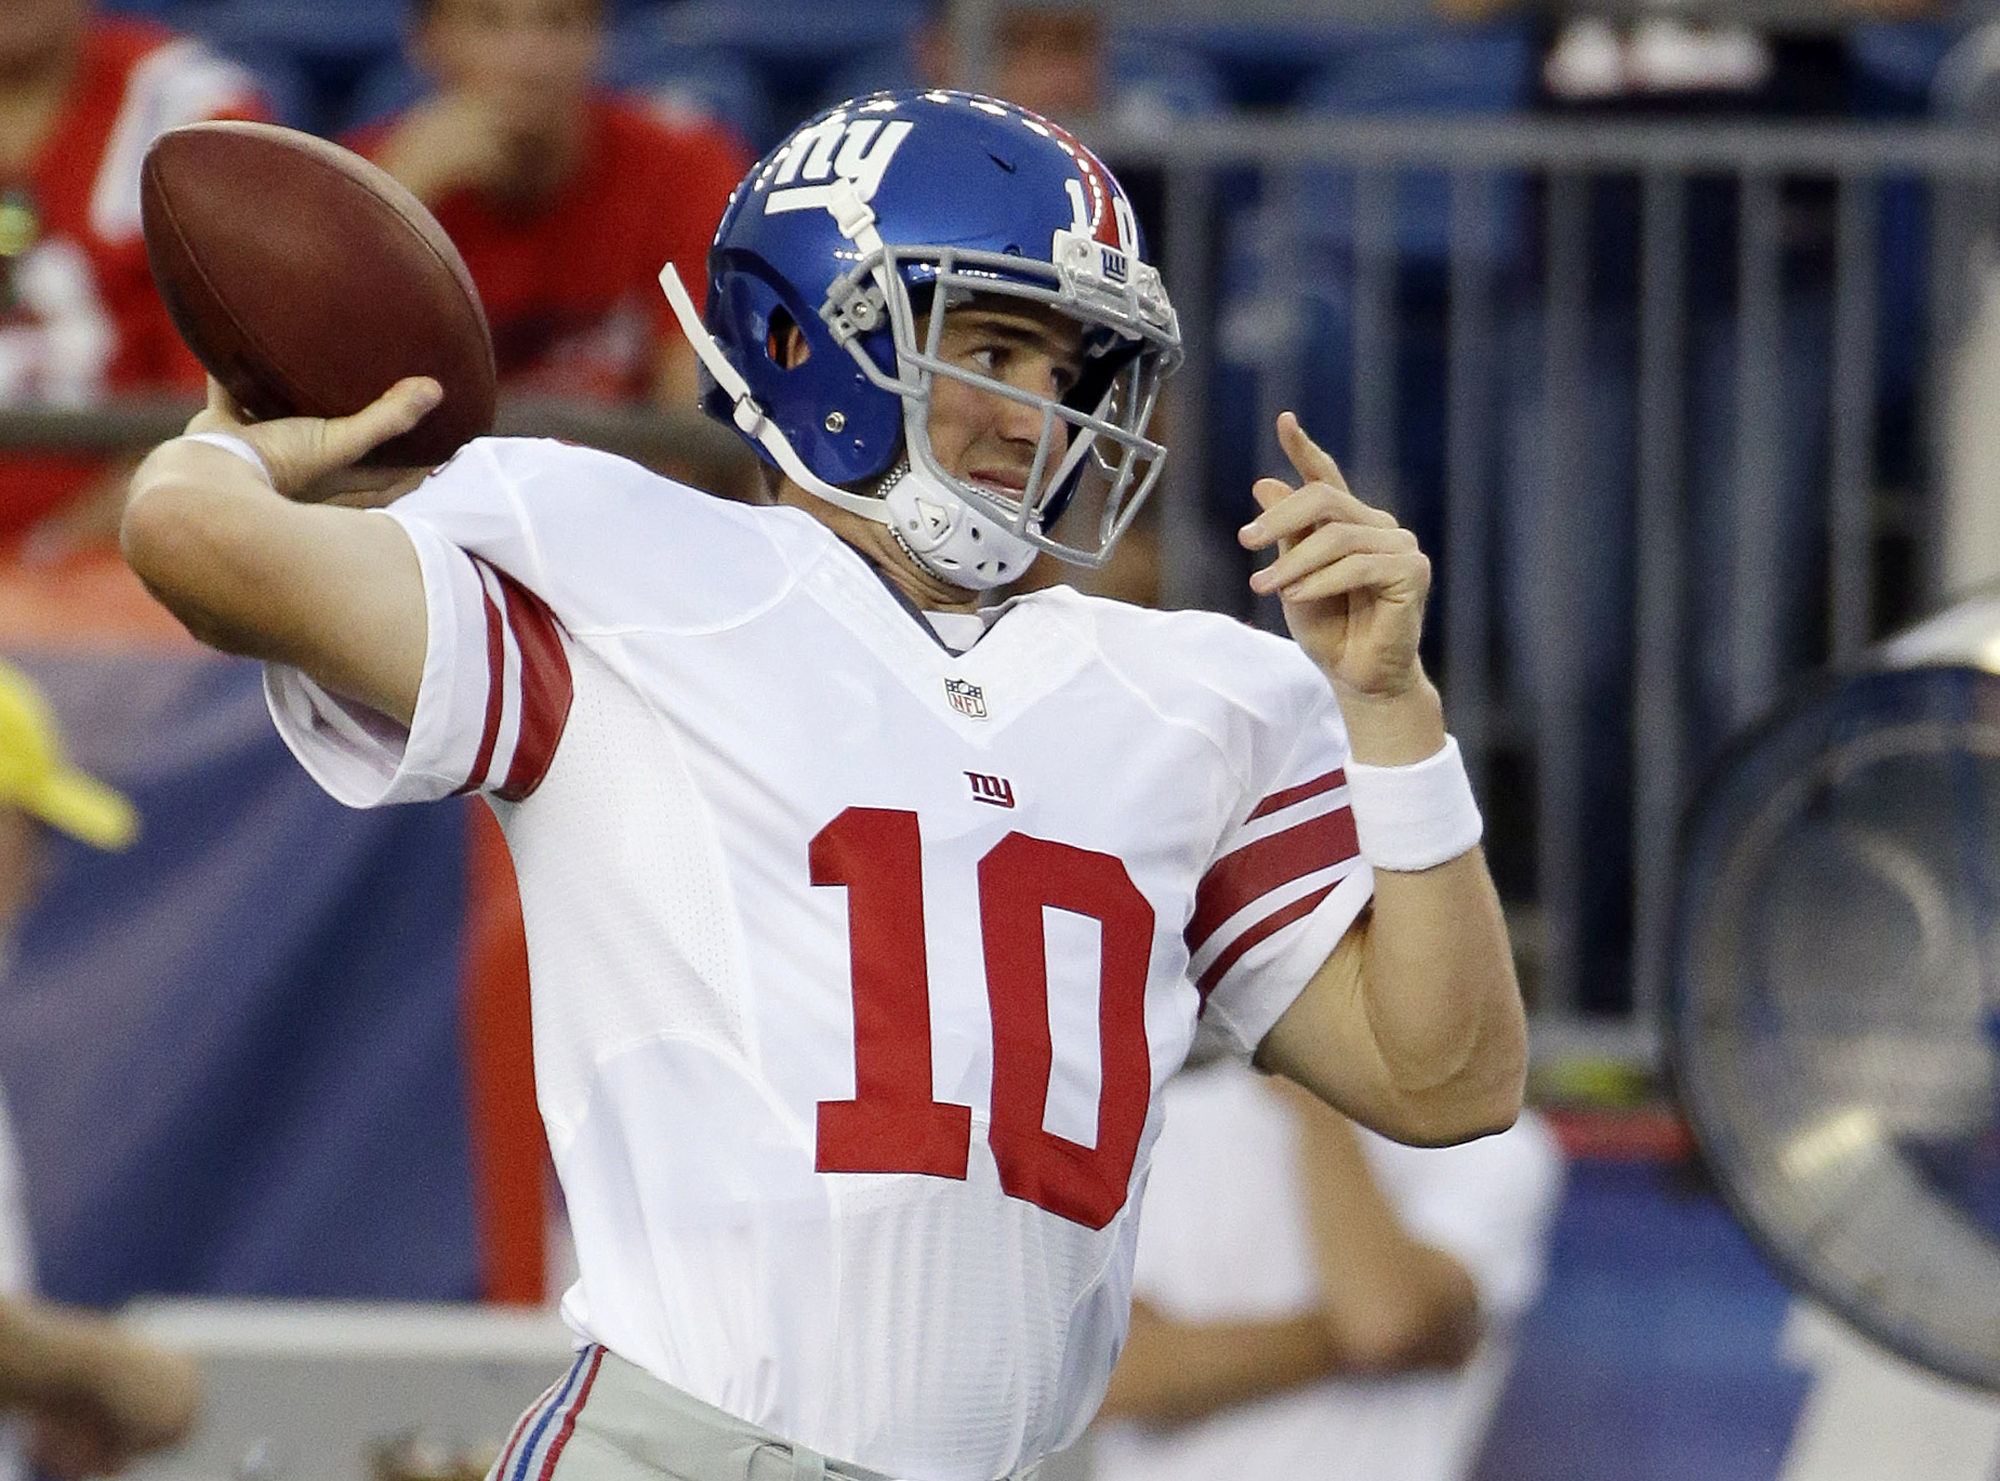 New York Giants quarterback Eli Manning warms up before an NFL preseason football game against the New England Patriots Thursday, Sept. 3, 2015, in Foxborough, Mass. (AP Photo/Stephan Savoia)